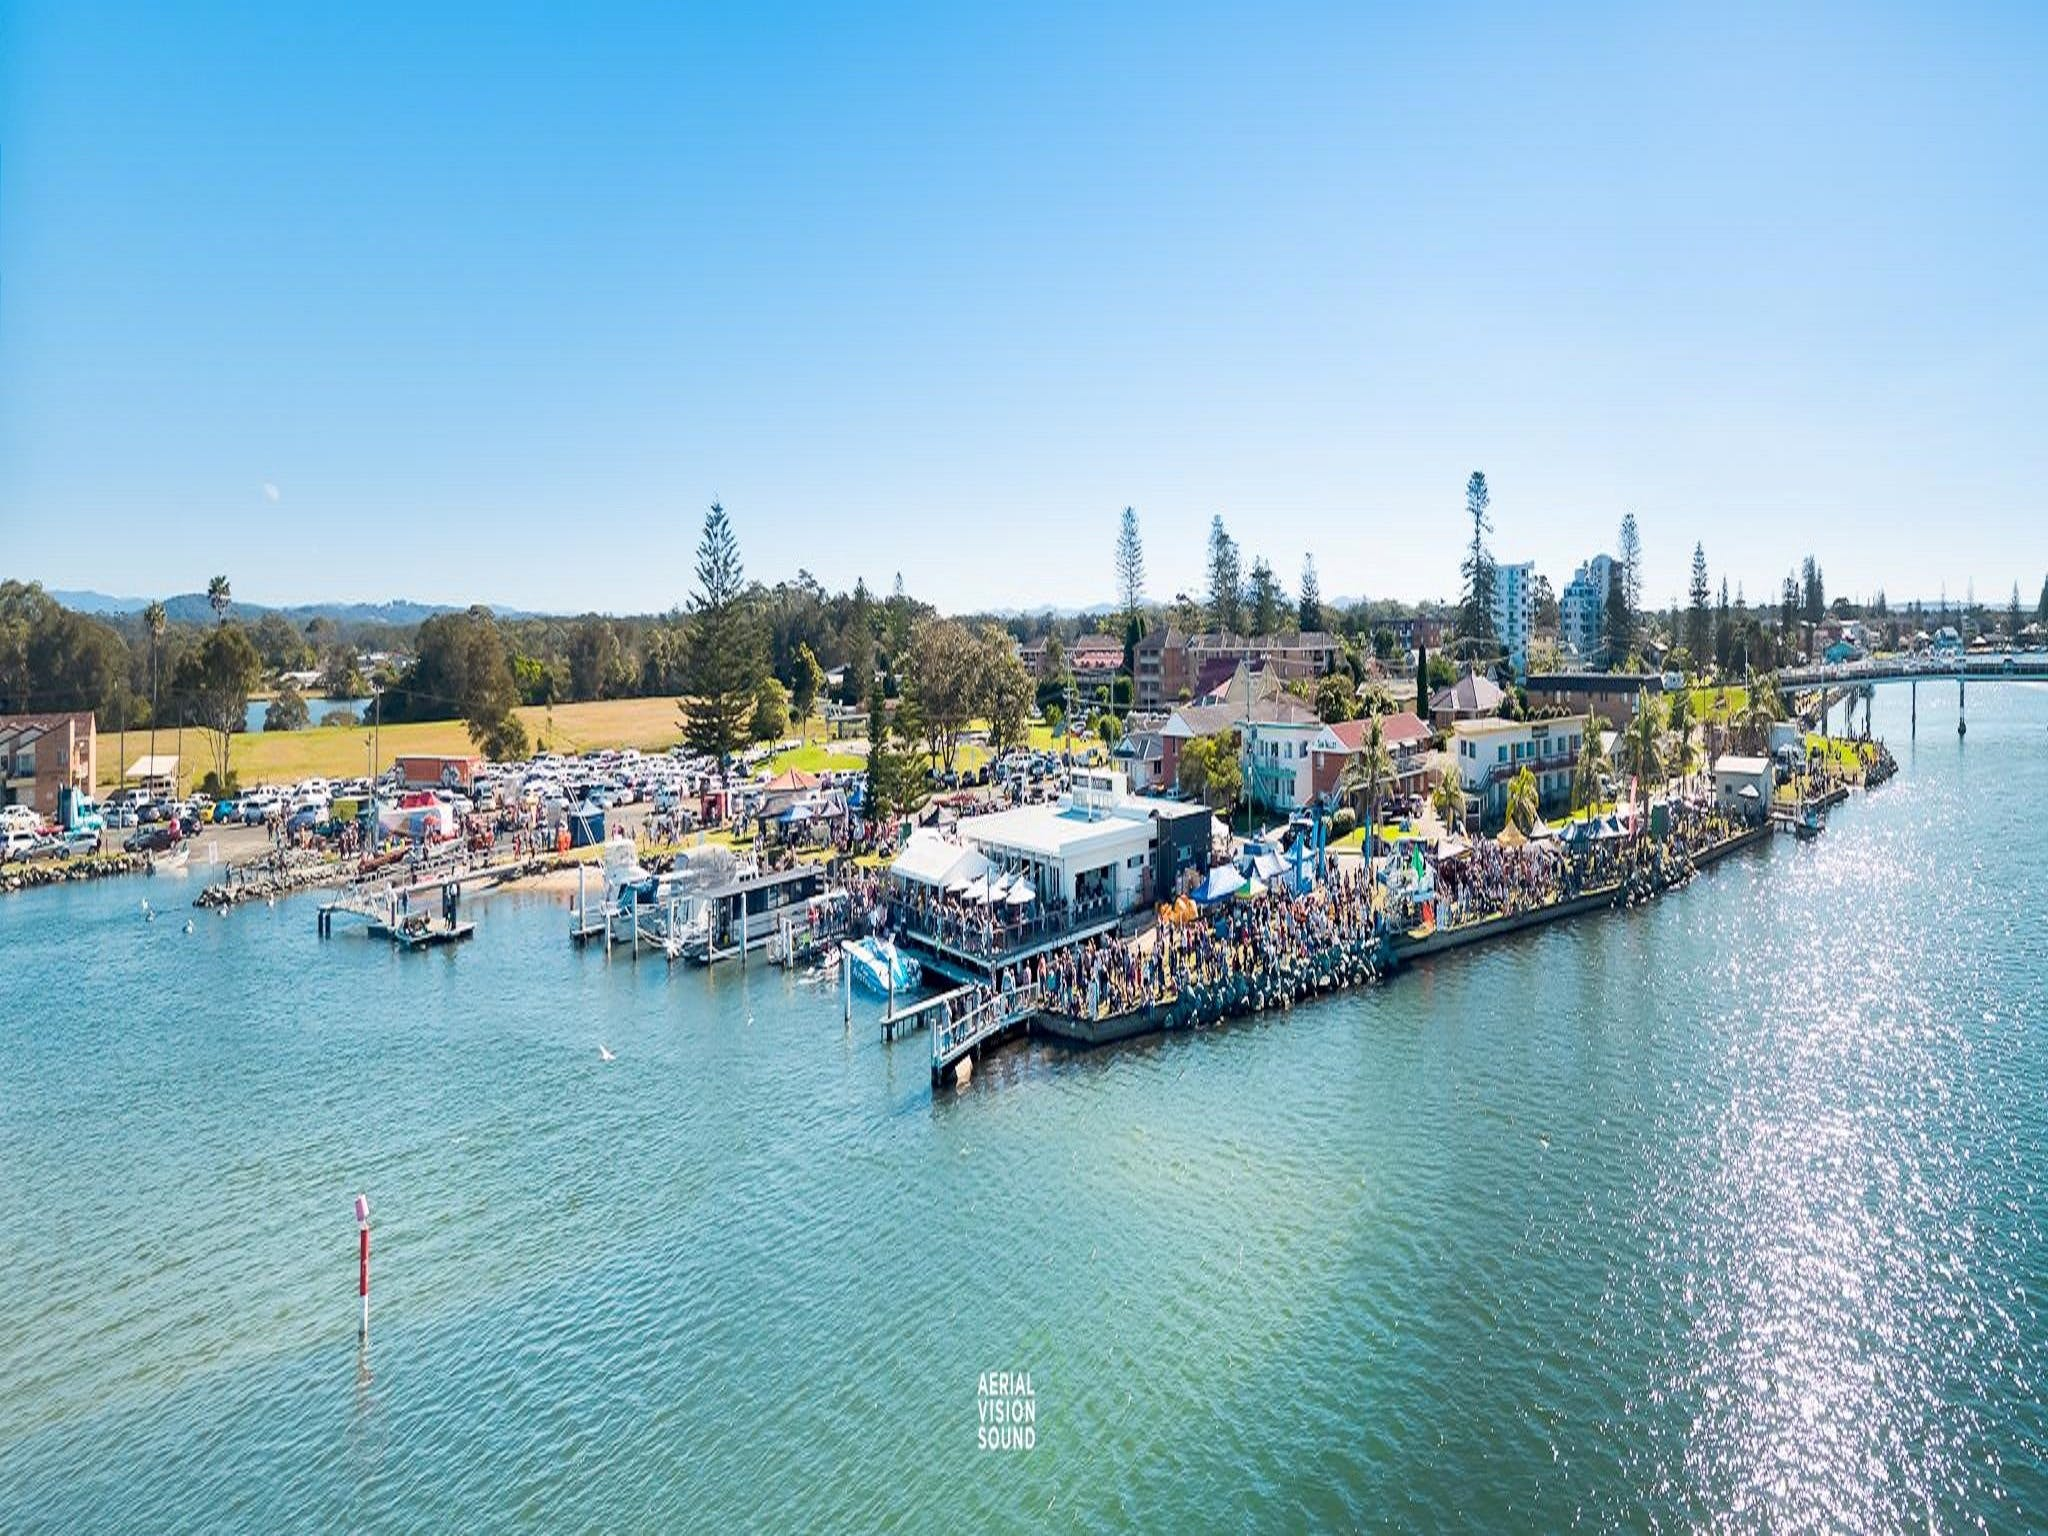 Fred Williams Aquatic Festival - Kempsey Accommodation